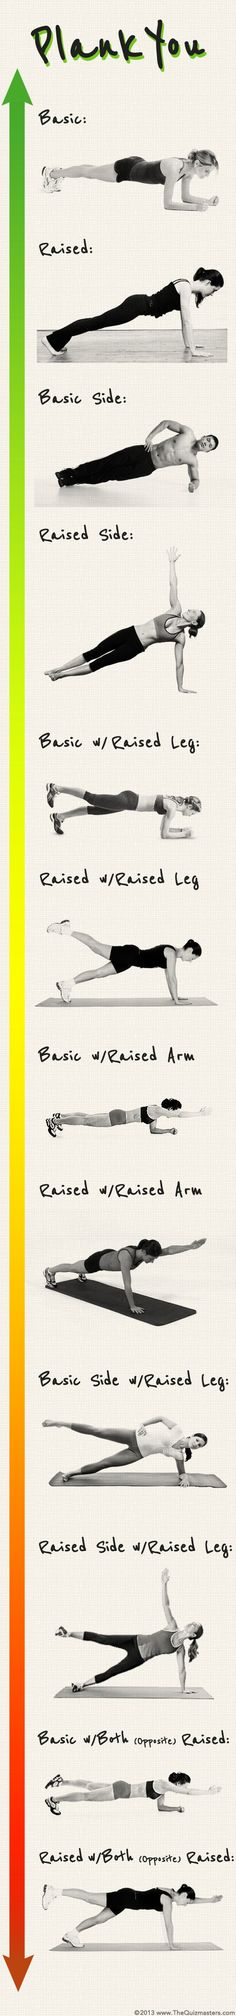 Workout Routines for all Body Parts : Daily motivation photos) - All Fitness Fitness Workouts, Fitness Motivation, Sport Fitness, Daily Motivation, At Home Workouts, Health Fitness, Plank Fitness, Workout Routines, Fitness Routines